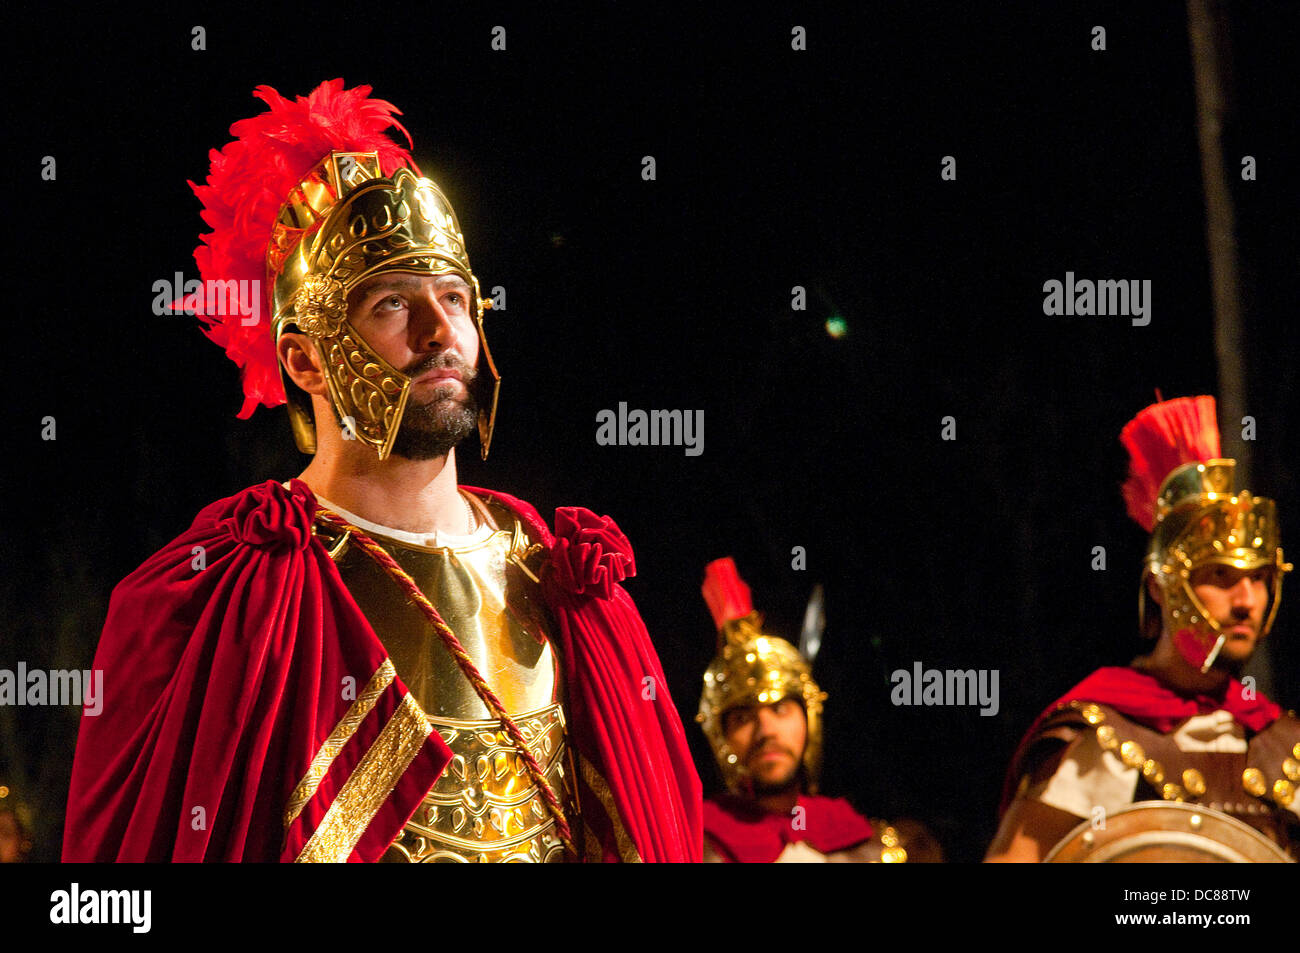 Centurion and Roman soldiers. Holy Week, Passion of Chinchon, Chinchon, Madrid province, Spain. - Stock Image